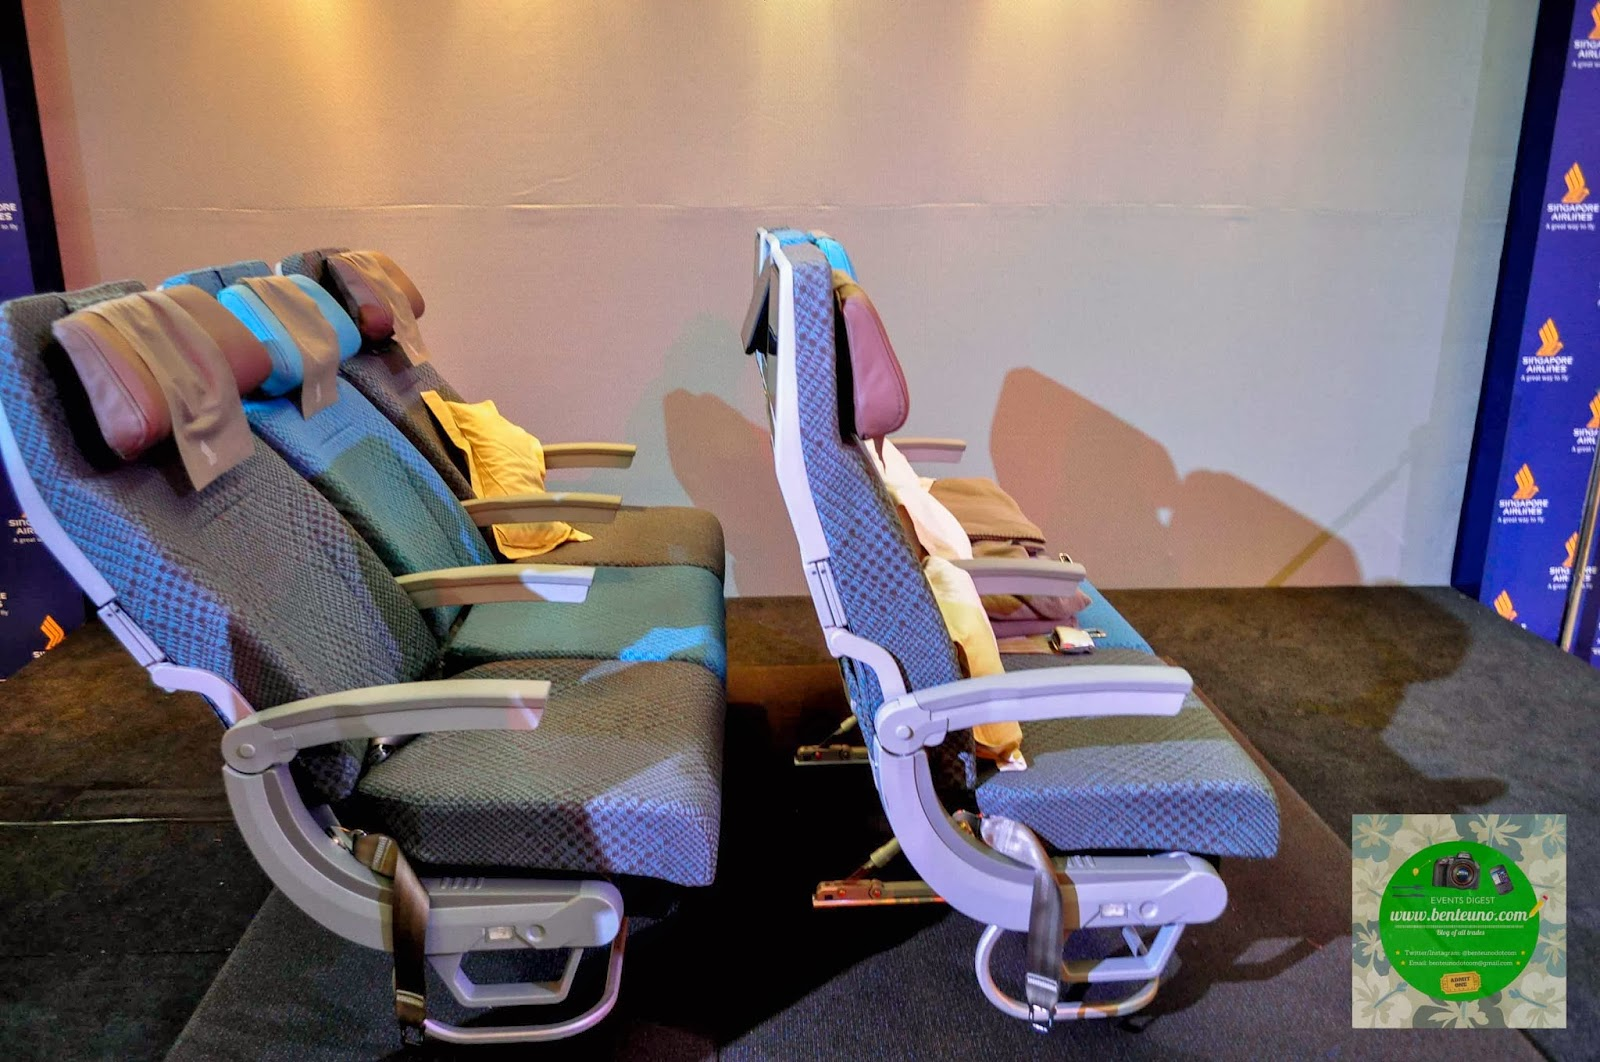 Singapore Airlines' New Economy Class cabin